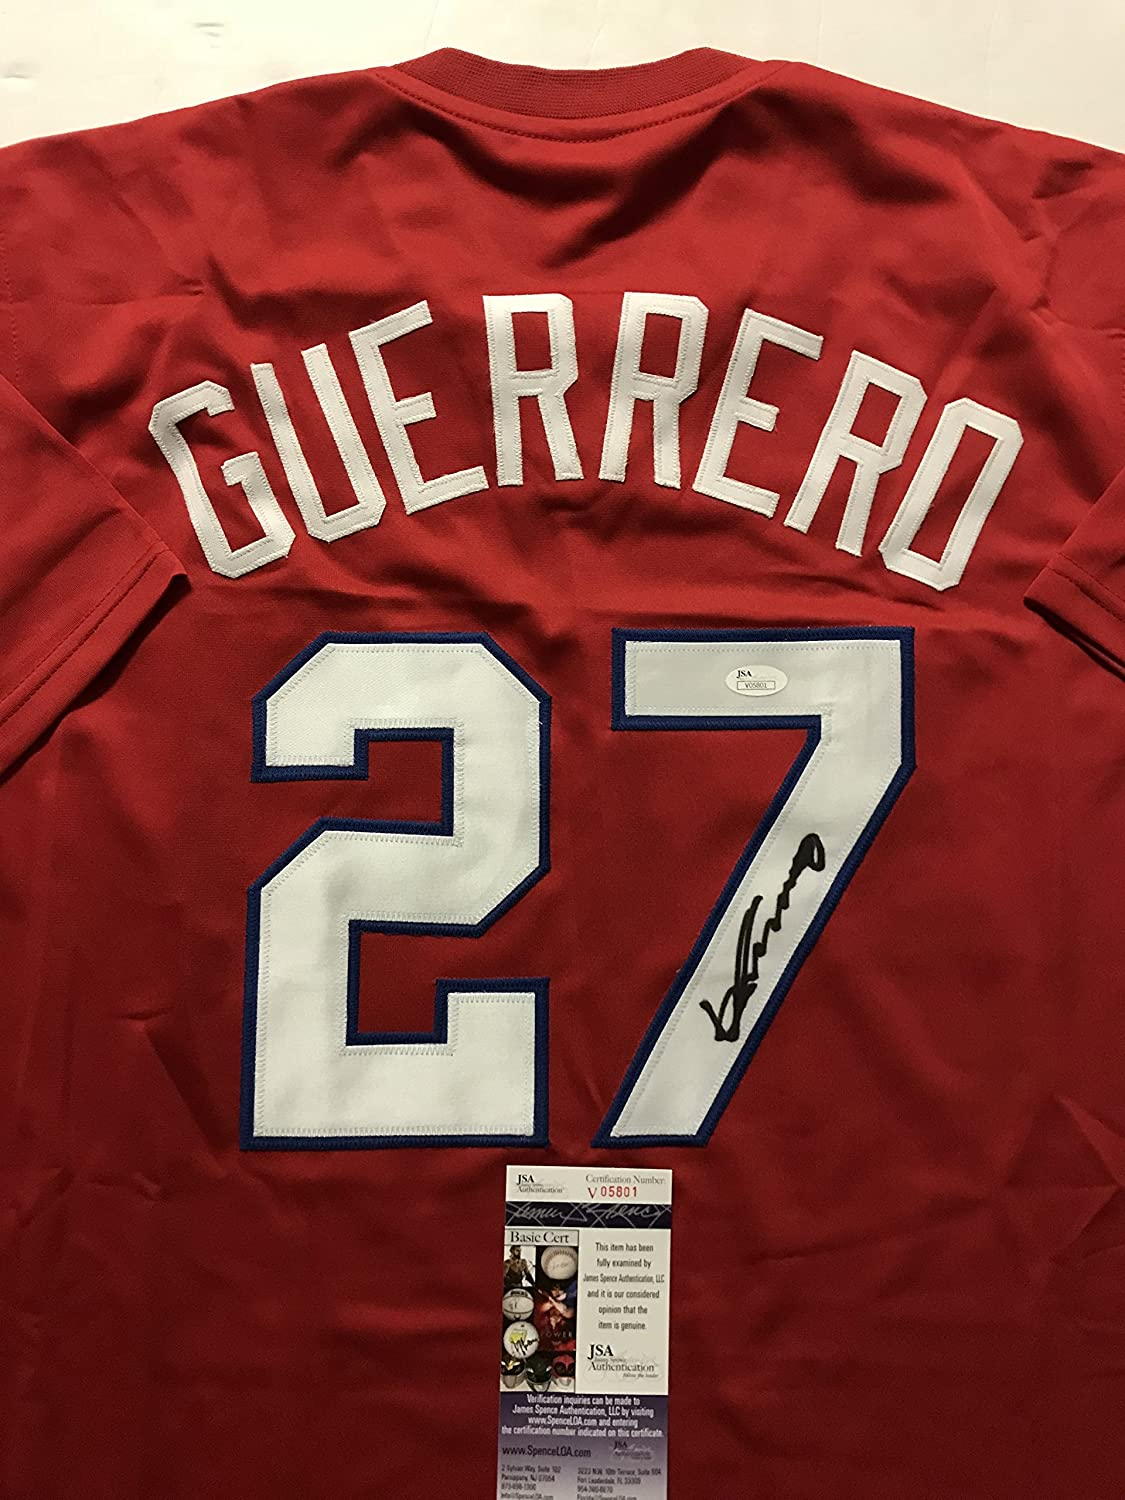 7c12ff233bb Autographed Signed Vladimir Vlad Guerrero Montreal Red Baseball Jersey JSA  COA at Amazon s Sports Collectibles Store